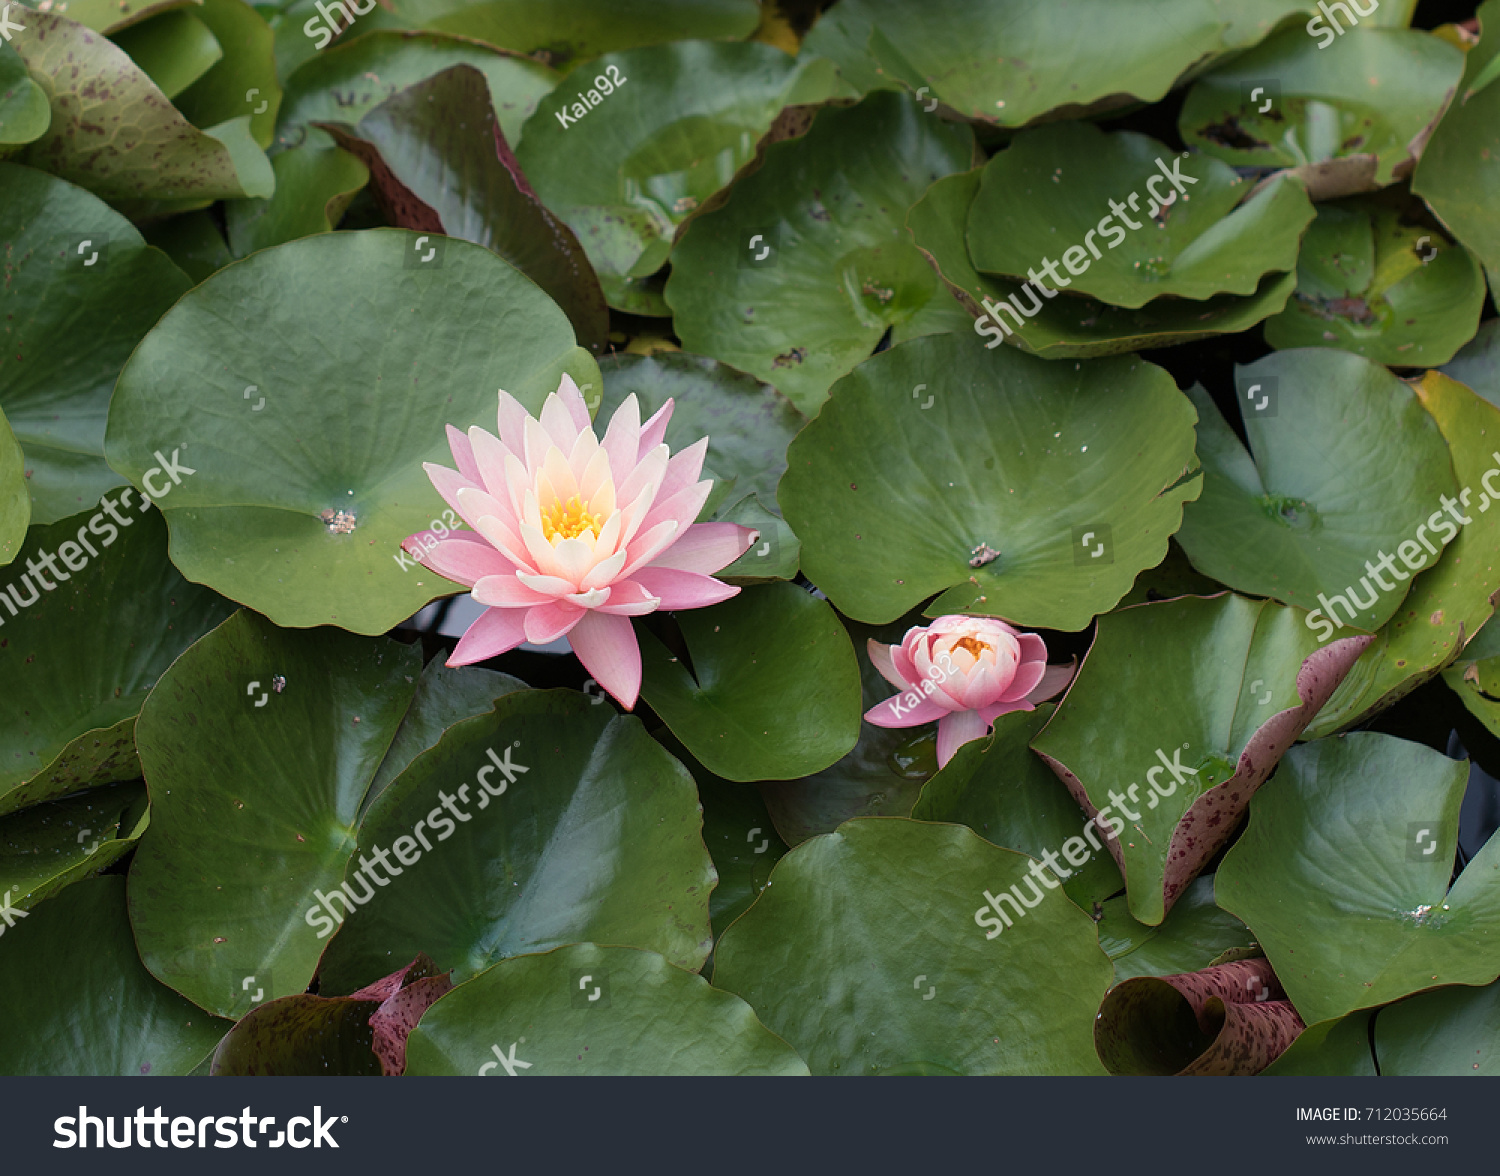 Lotus flower with lily pads in pond ez canvas id 712035664 izmirmasajfo